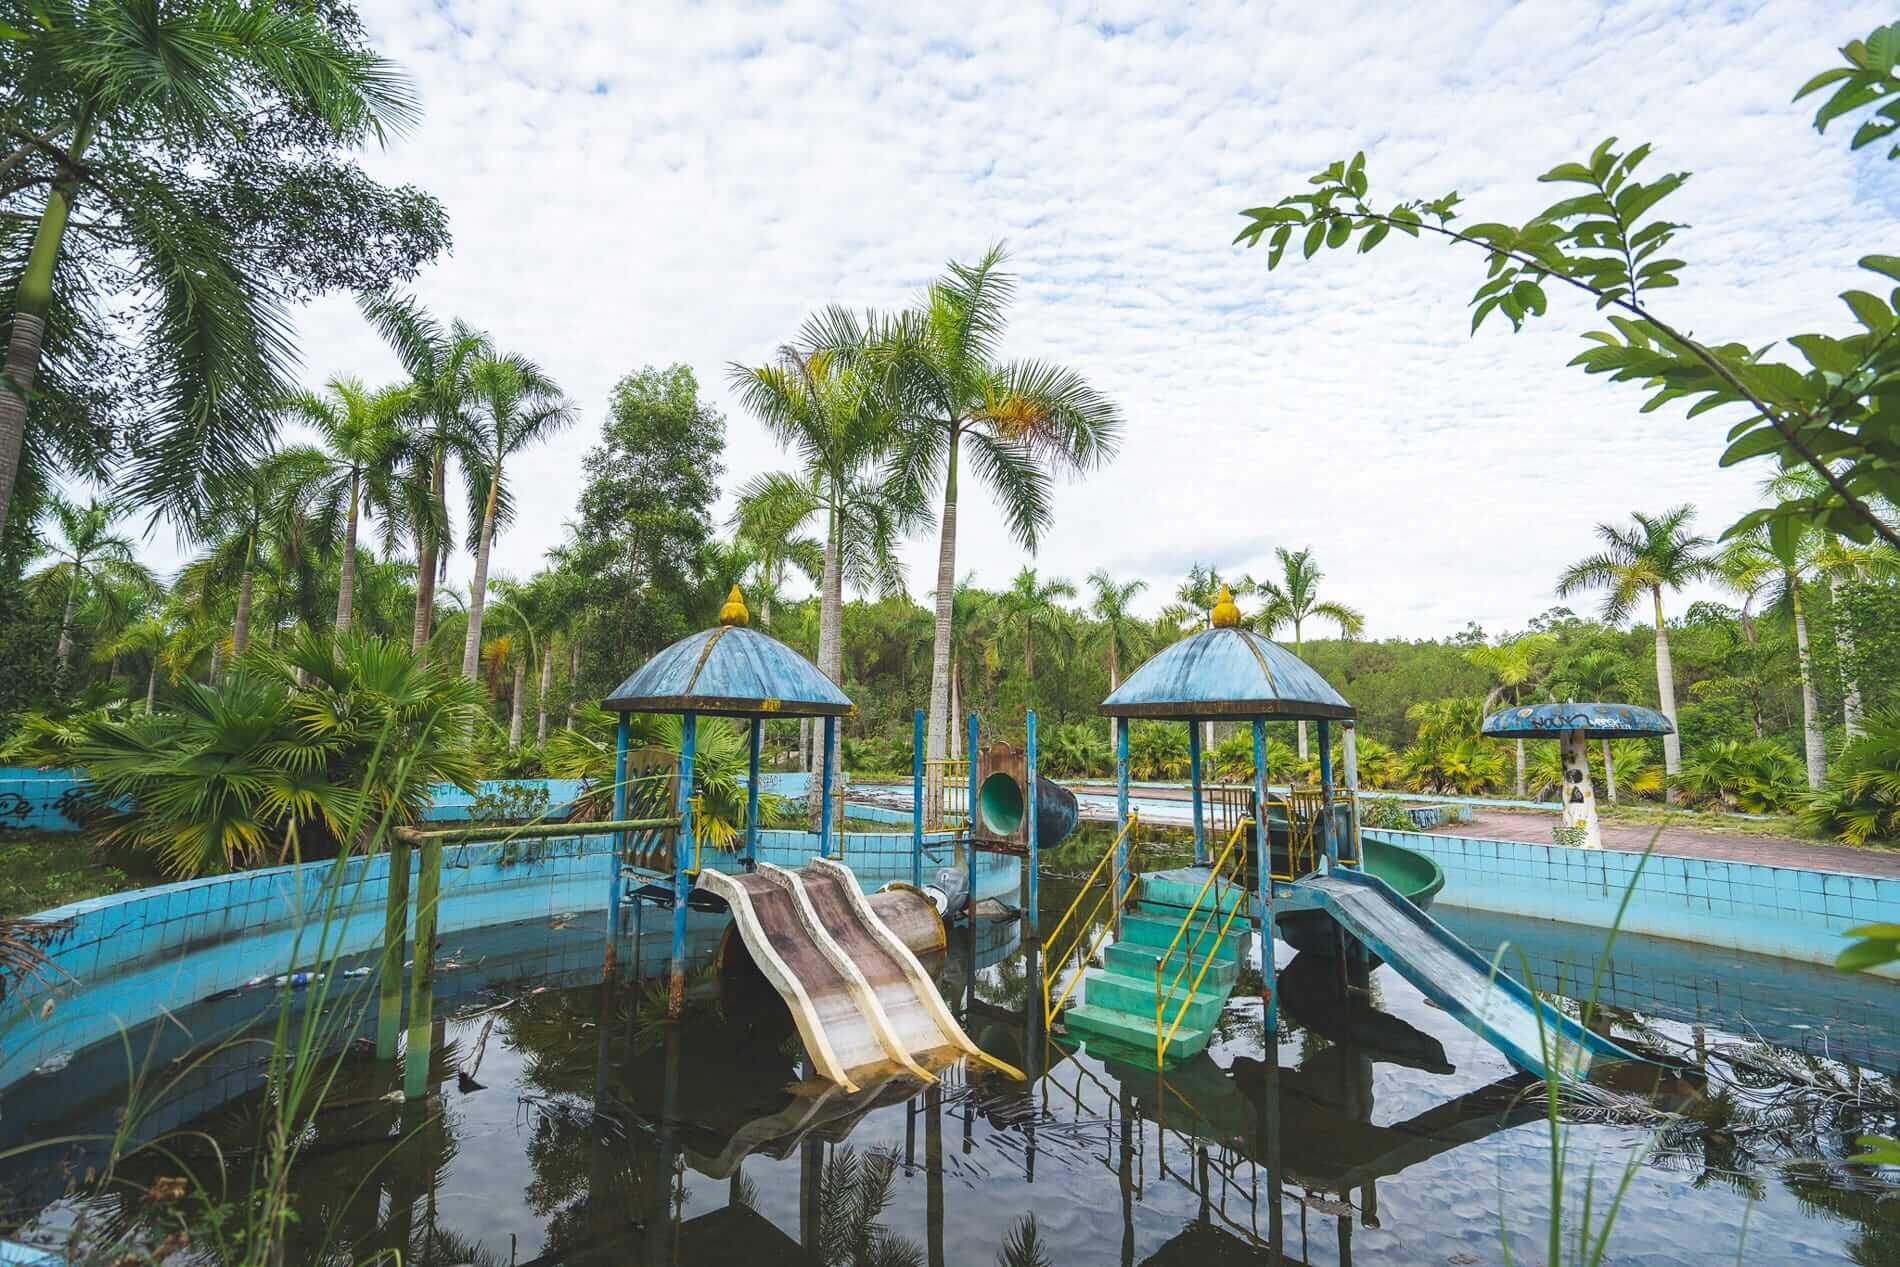 Dirty swimming pool - Hue's abandoned water park